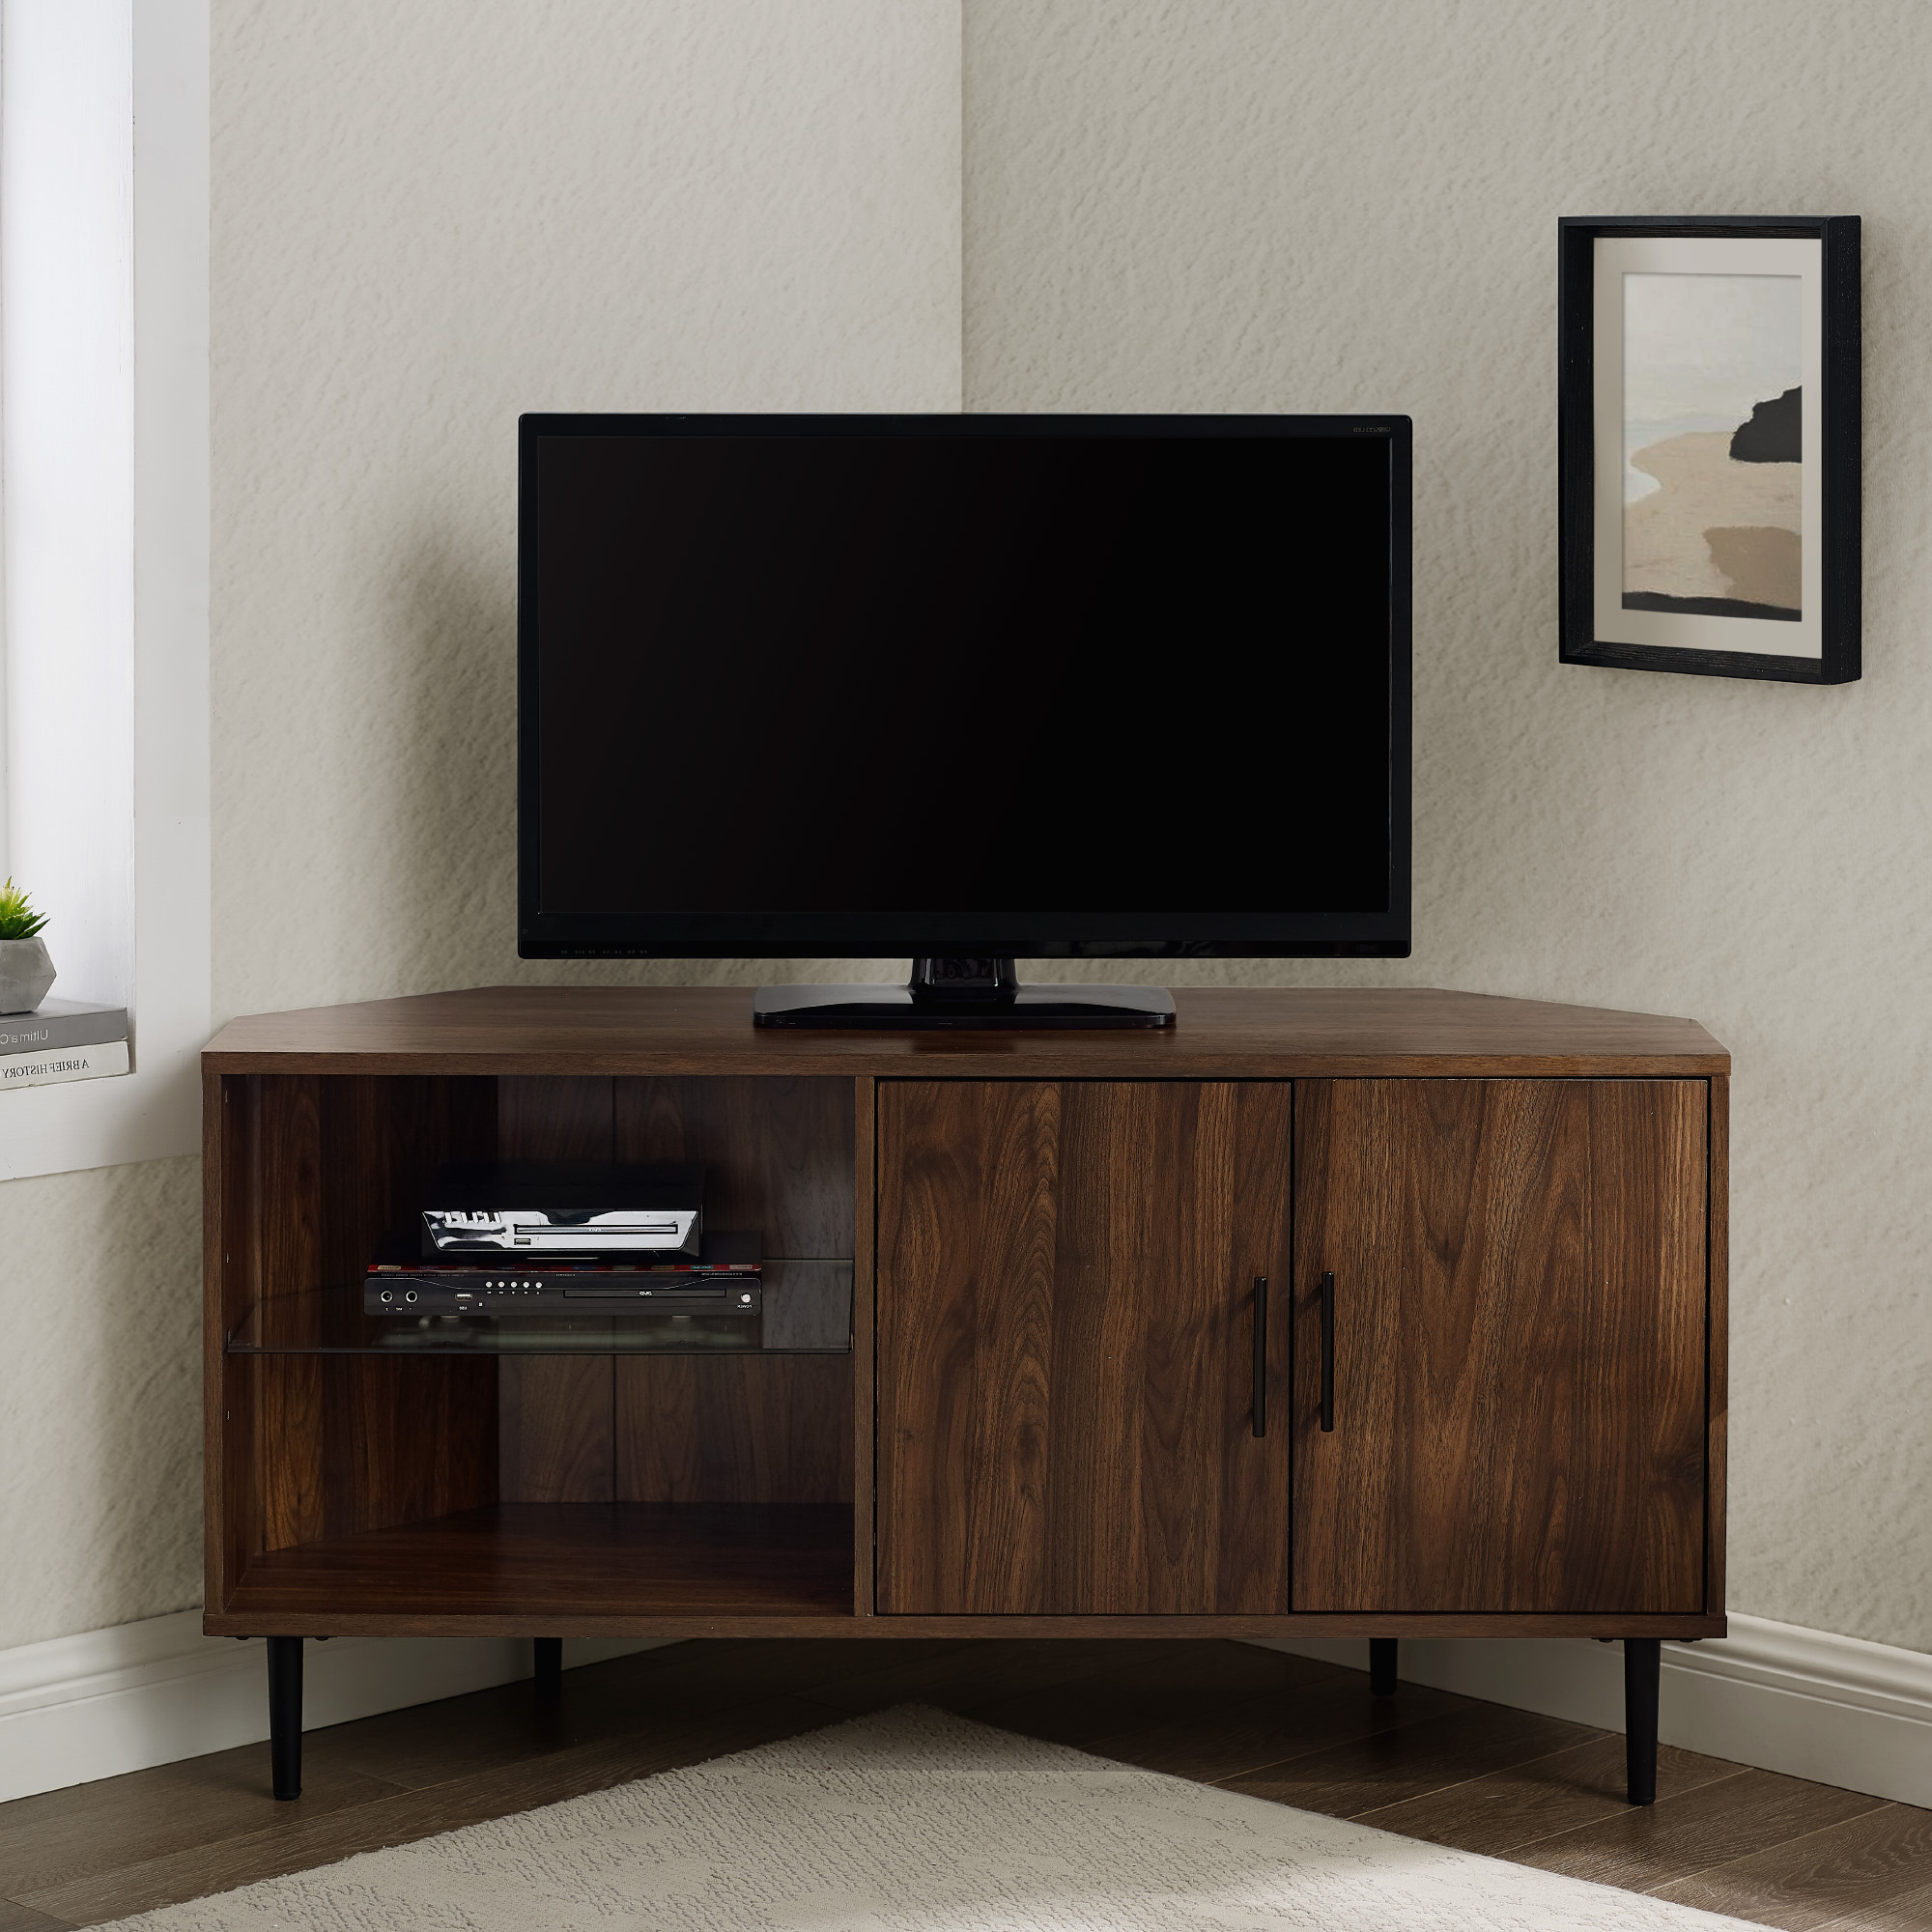 """Manor Park Basie 2 Door Corner Tv Stand For Tvs Up To 55 Inside Baba Tv Stands For Tvs Up To 55"""" (View 9 of 20)"""